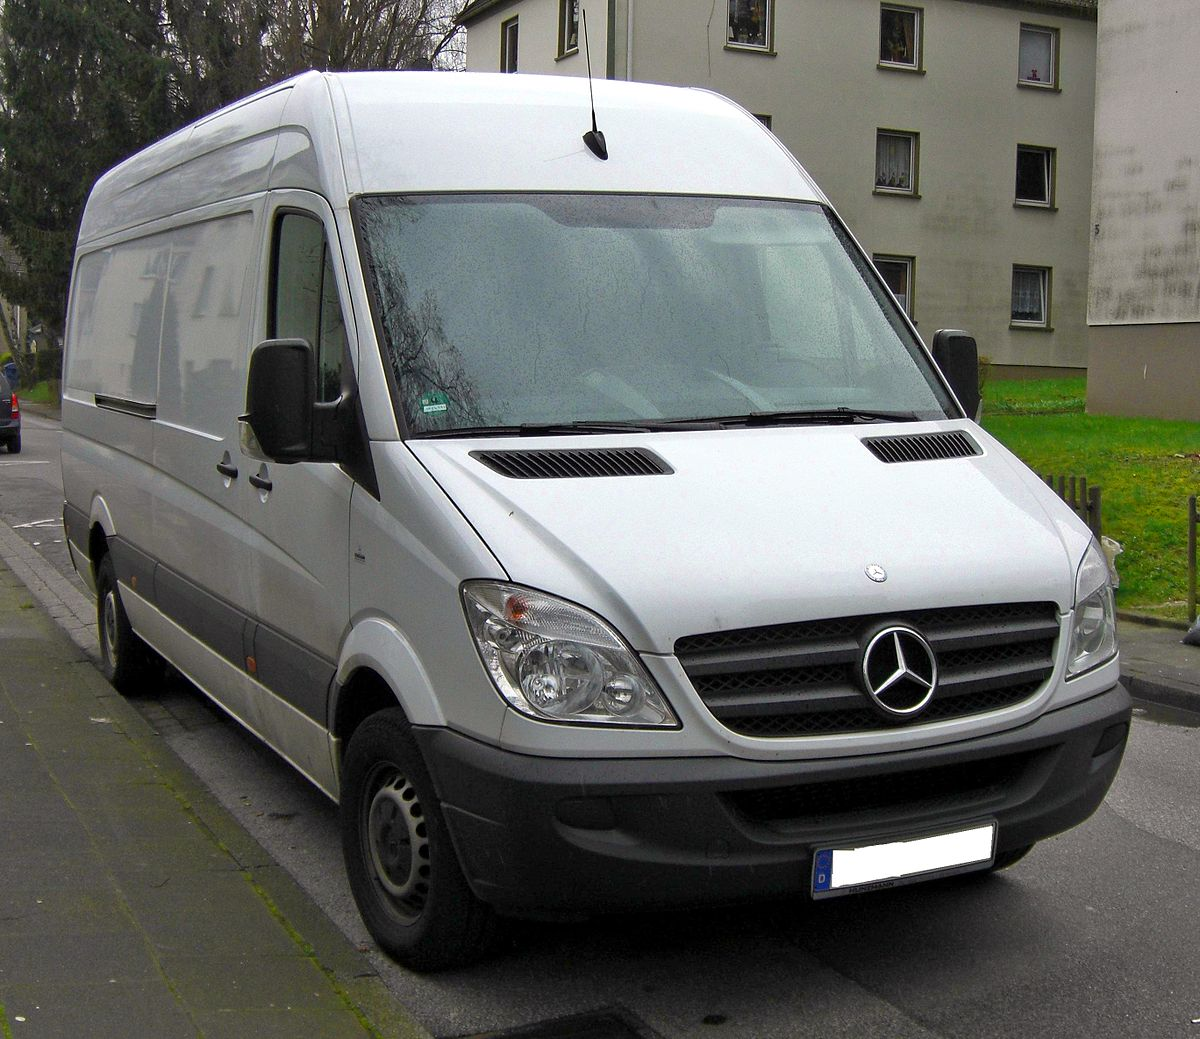 Mercedes-Benz Sprinter – Wikipedia